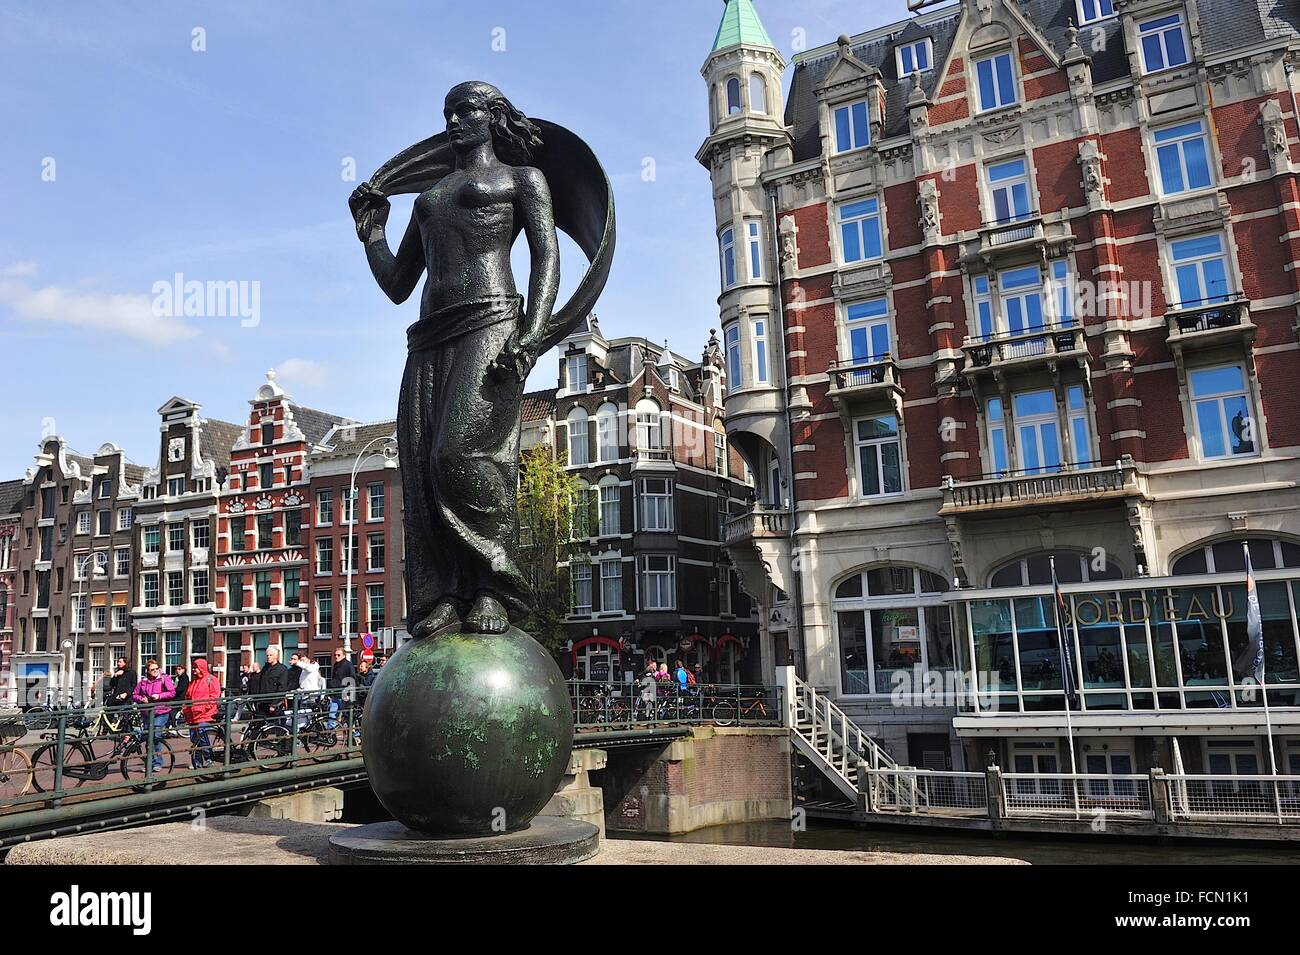 Statue of Lady Fortune on the Rokin. Amsterdam, Netherlands - Stock Image